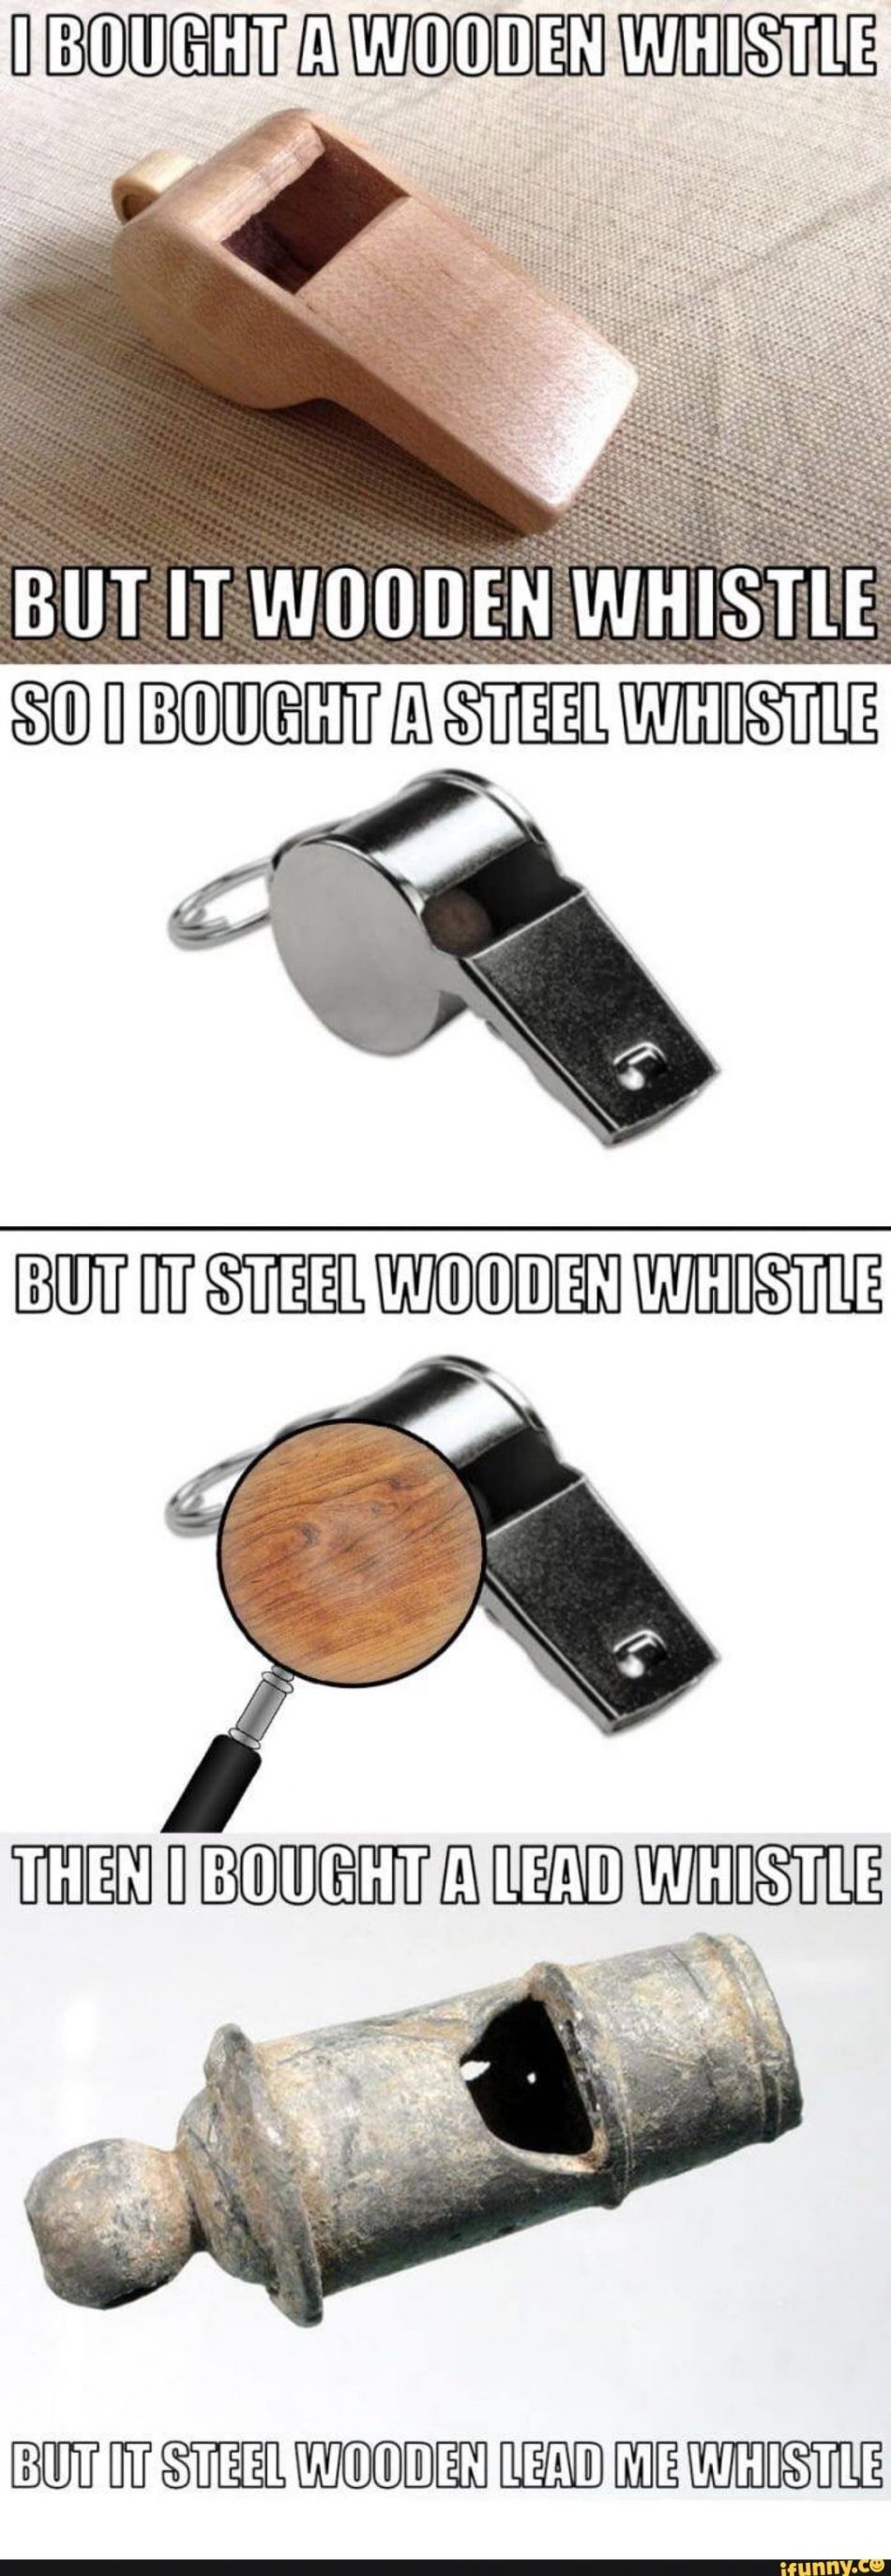 Ik one that will always whistle